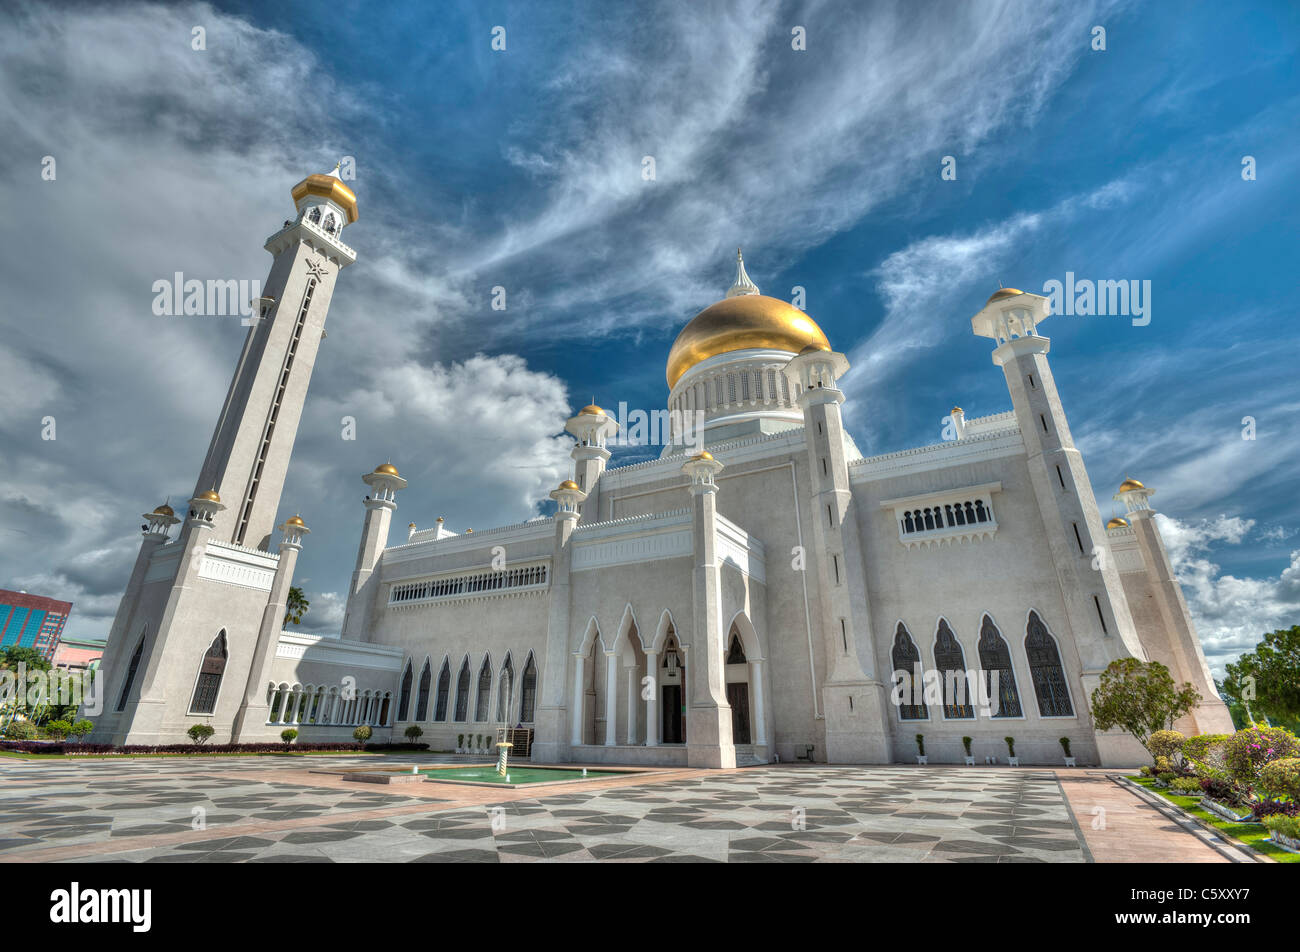 The Sultan Omar Ali Saifuddin Mosque in Bandar Seri Begawan, Brunei Stock Photo